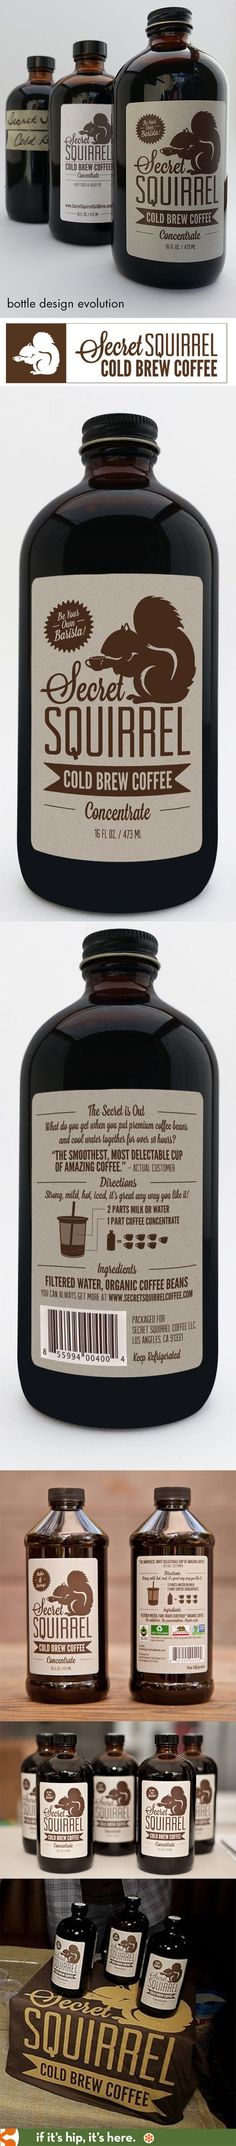 Here you go Secret Squirrel Cold Brew Coffee Concentrate's Bottle Design Evolution PD